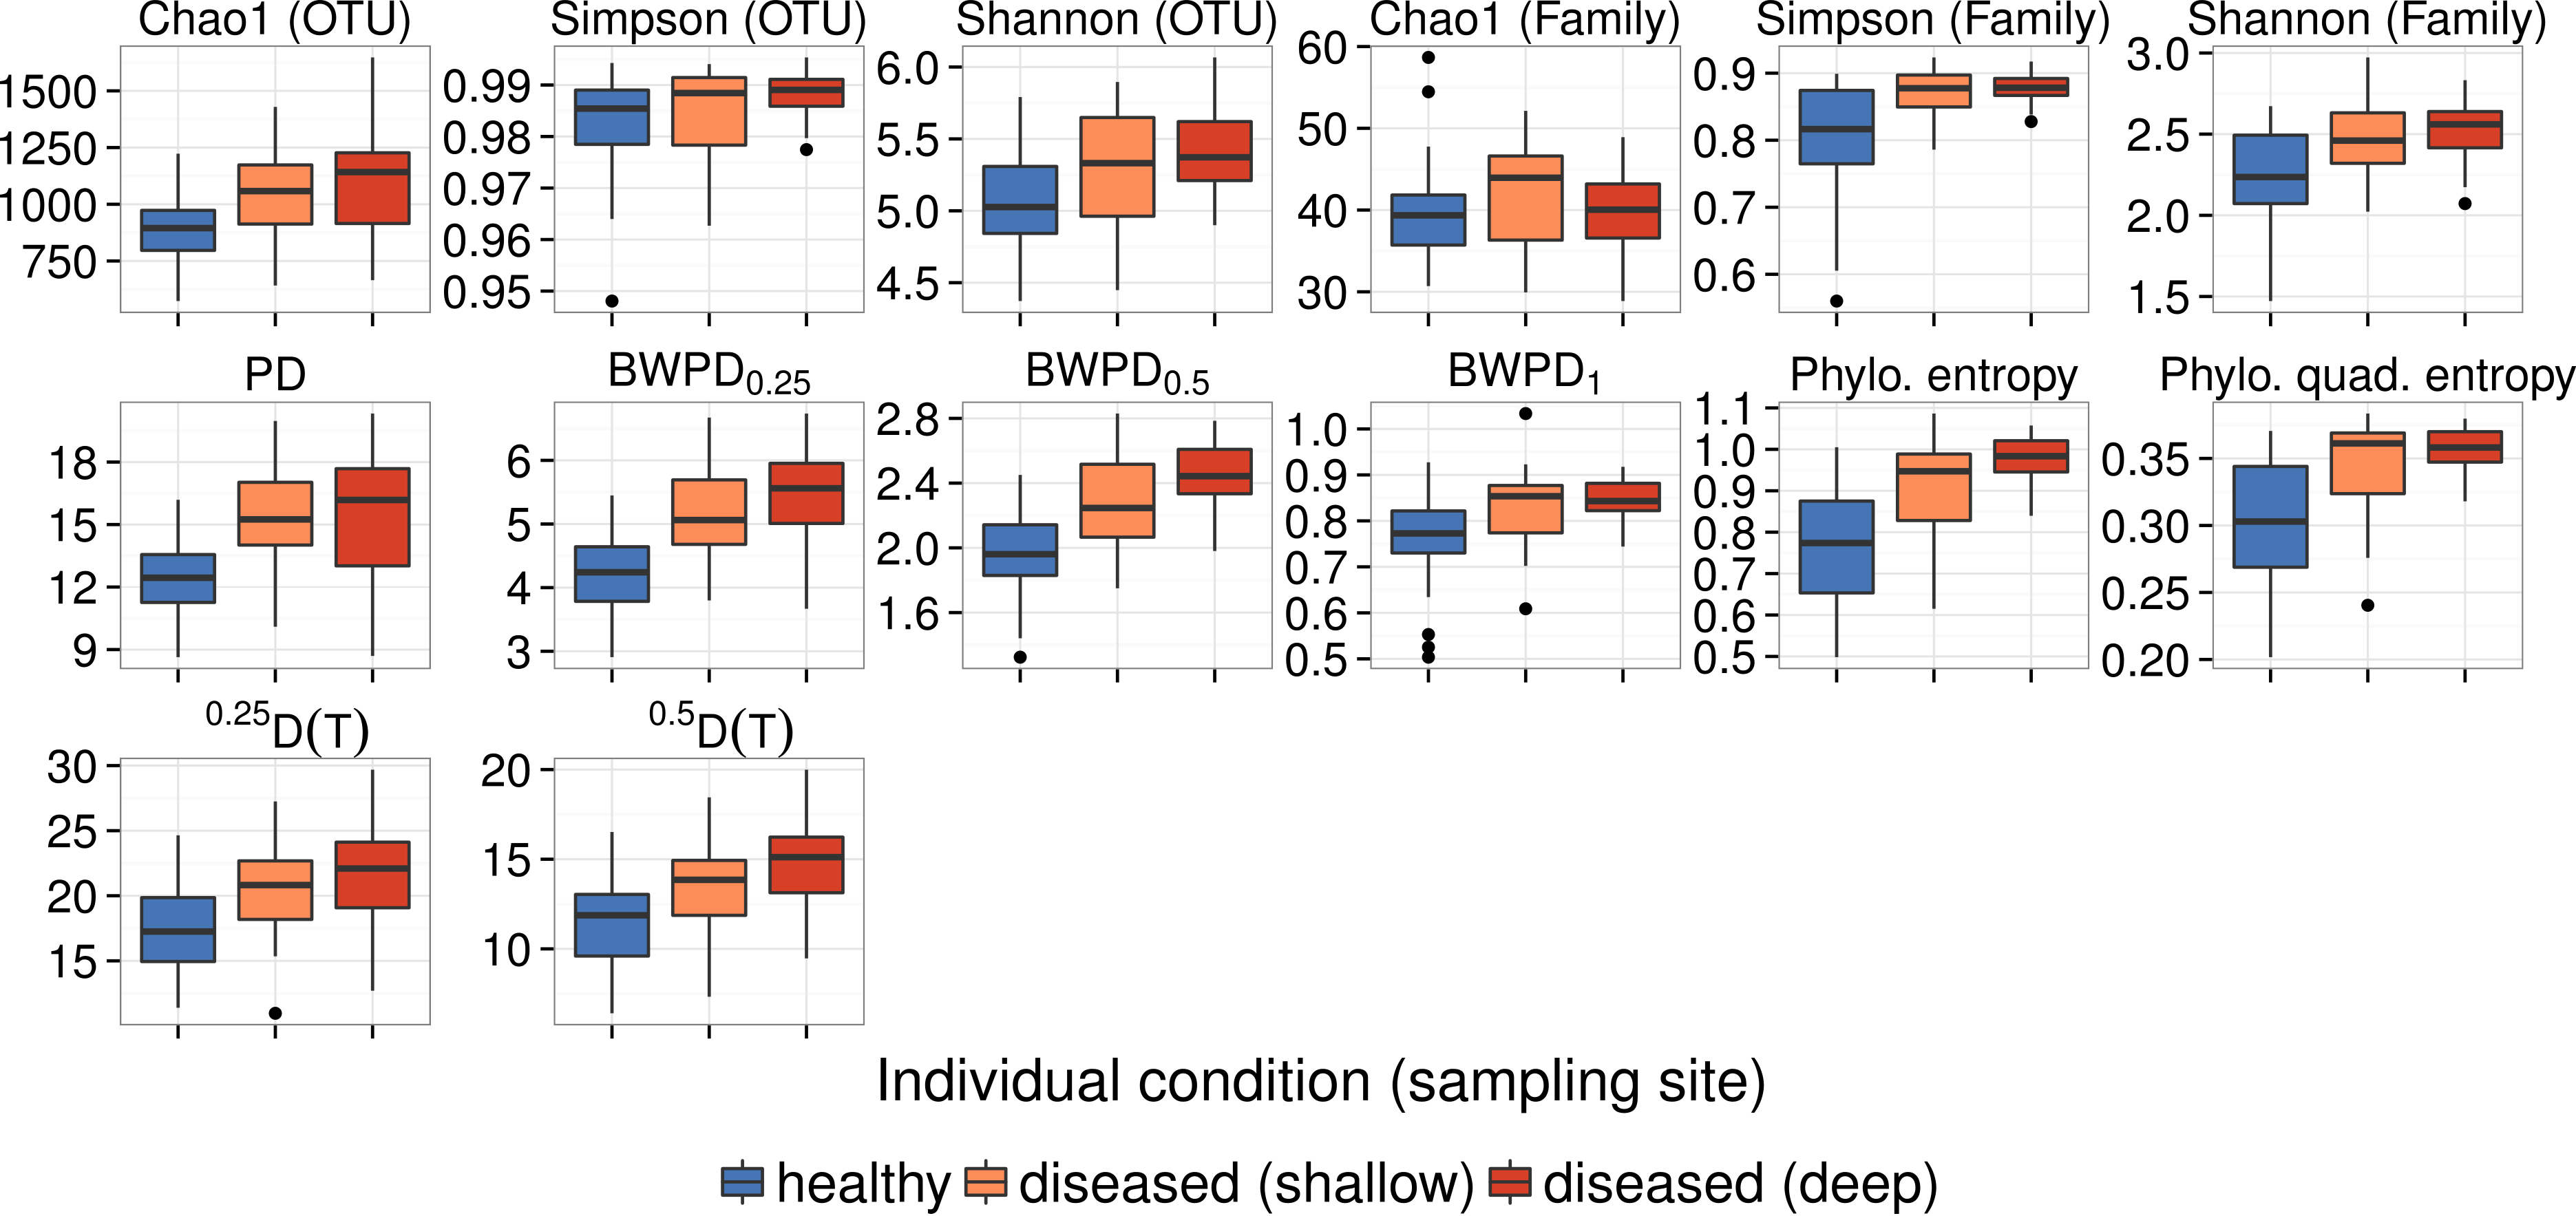 Abundance-weighted phylogenetic diversity measures